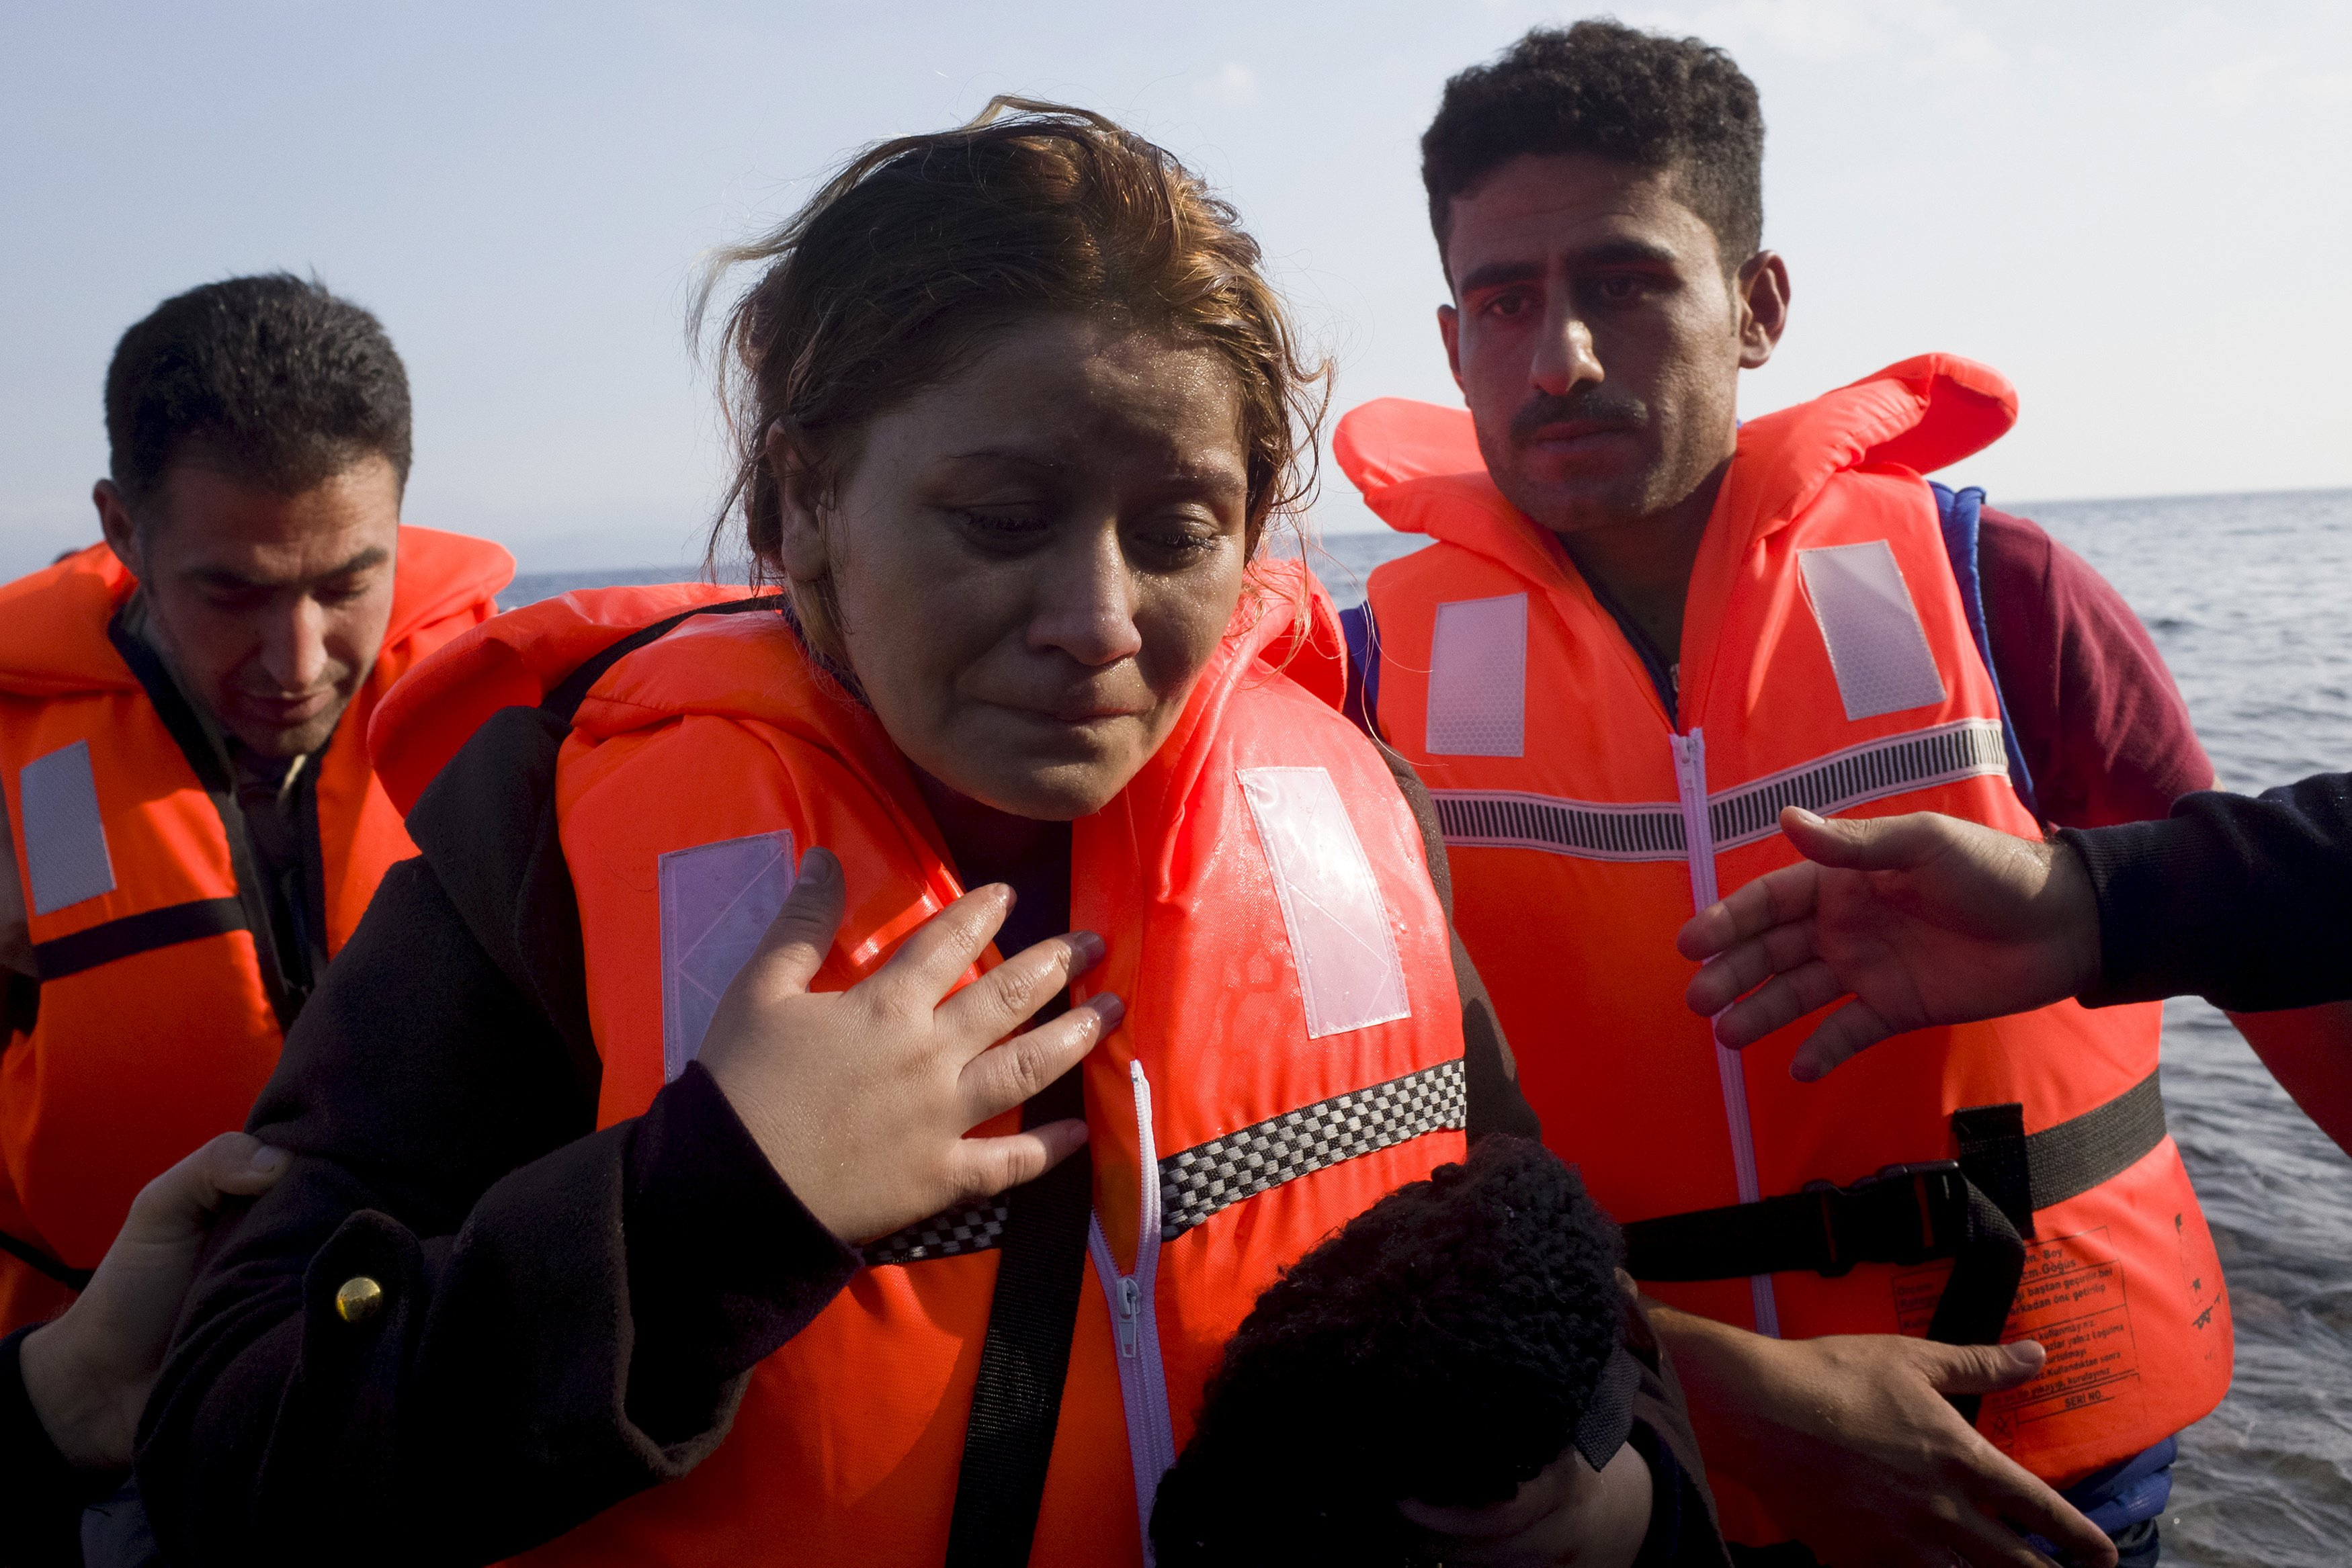 A Syrian refugee reacts following her arrival on an overcrowded dinghy on the Greek island of Lesbos, after crossing a part of the Aegean Sea from the Turkish coast, October 3, 2015. Refugee and migrant arrivals to Greece this year will soon reach 400,000, according to the UN Refugee Agency (UNHCR). REUTERS/Dimitris Michalakis